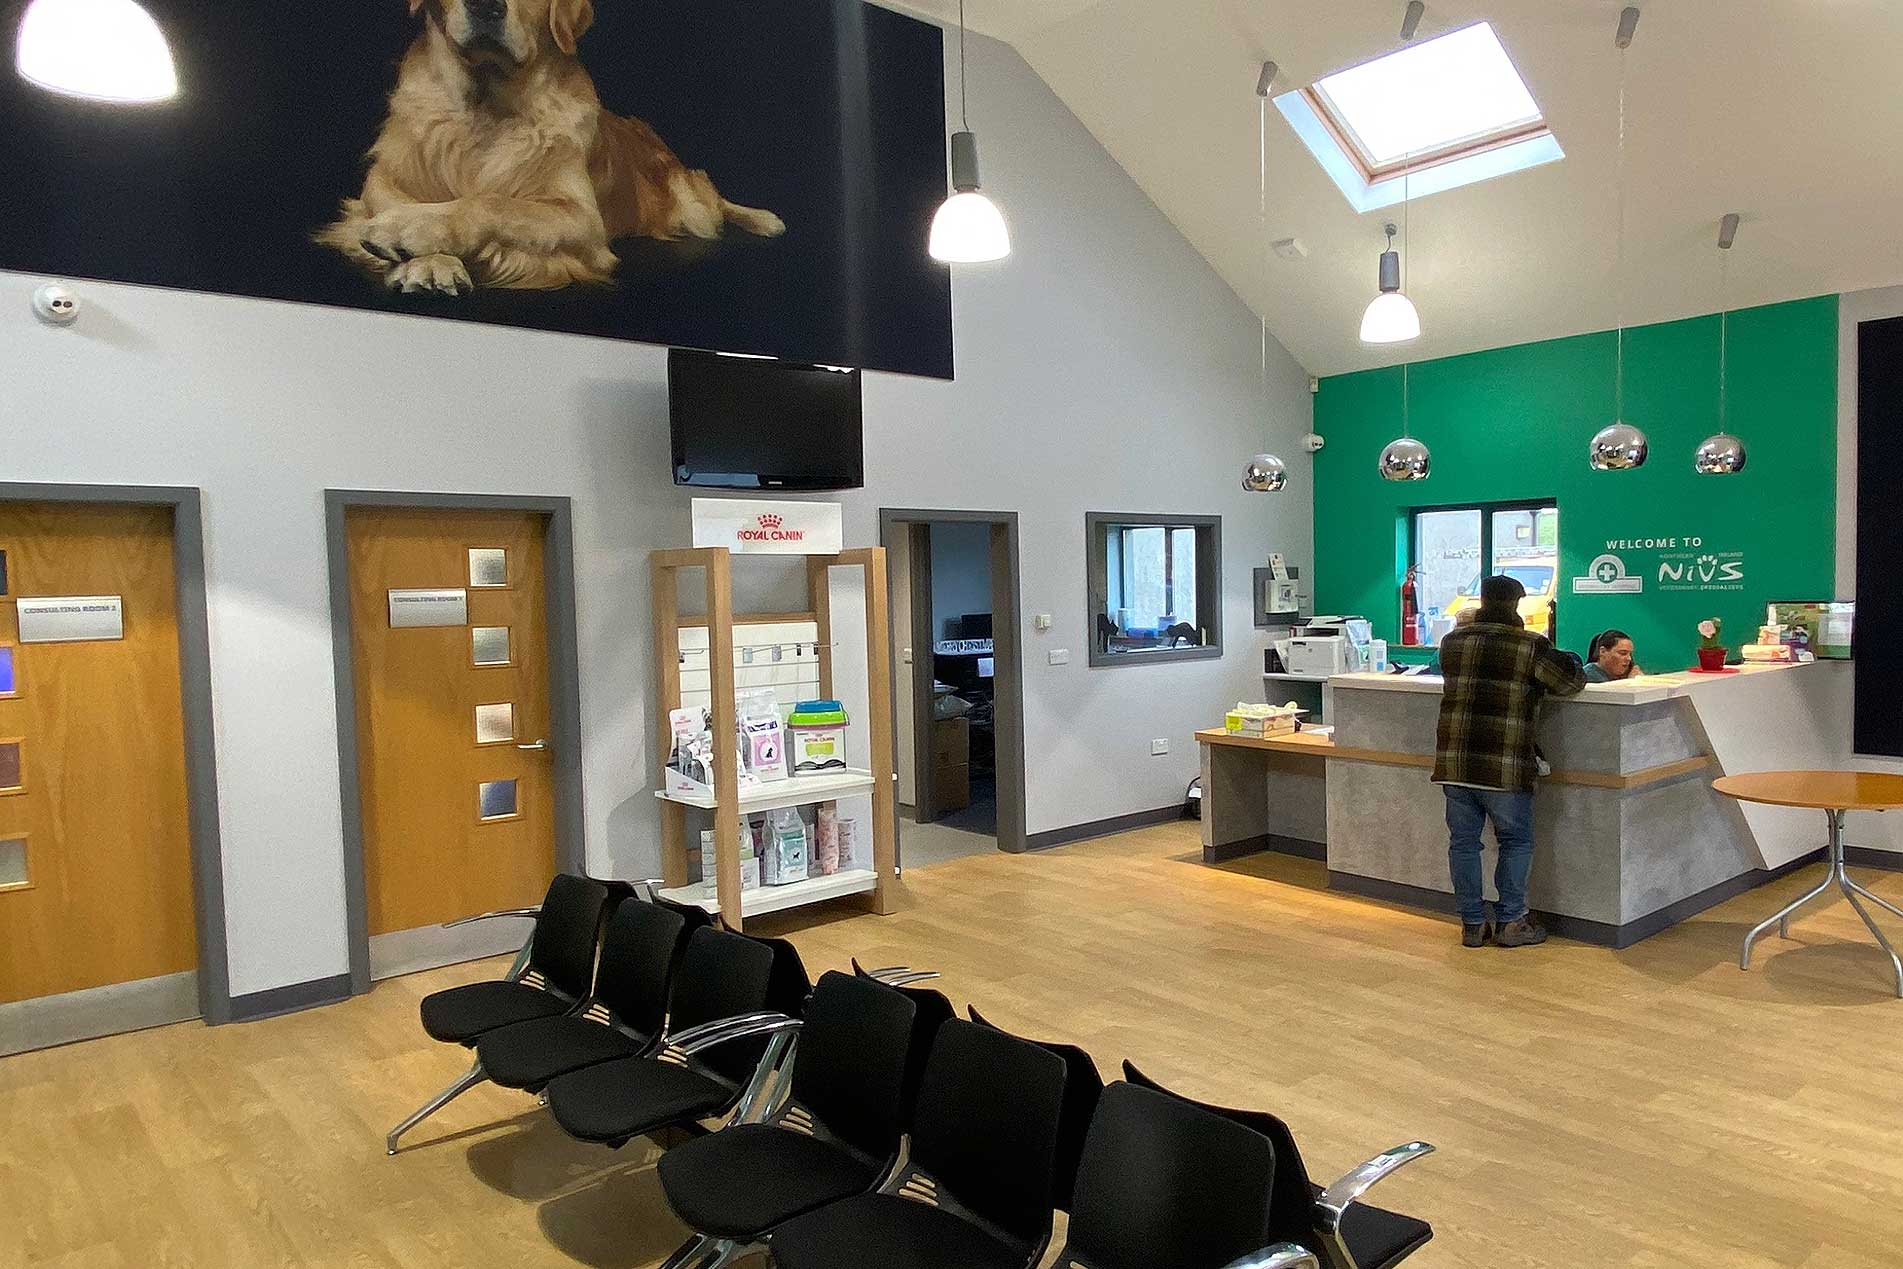 The reception and waiting area for Northern Ireland Veterinary Specialists